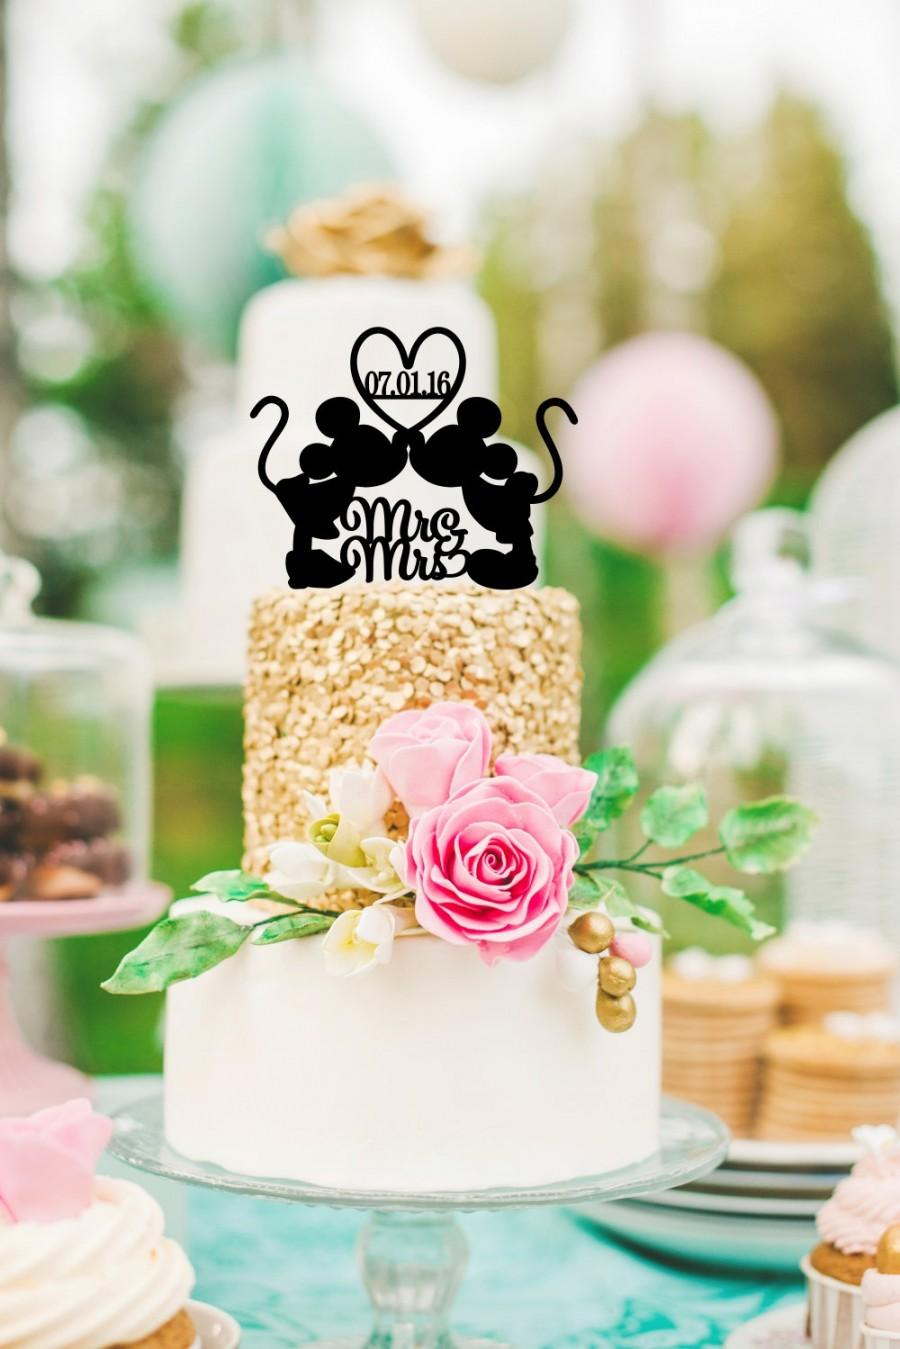 Düğün - Mickey and Minnie Wedding Cake Topper - Personalized Cake Topper with YOUR Wedding Date